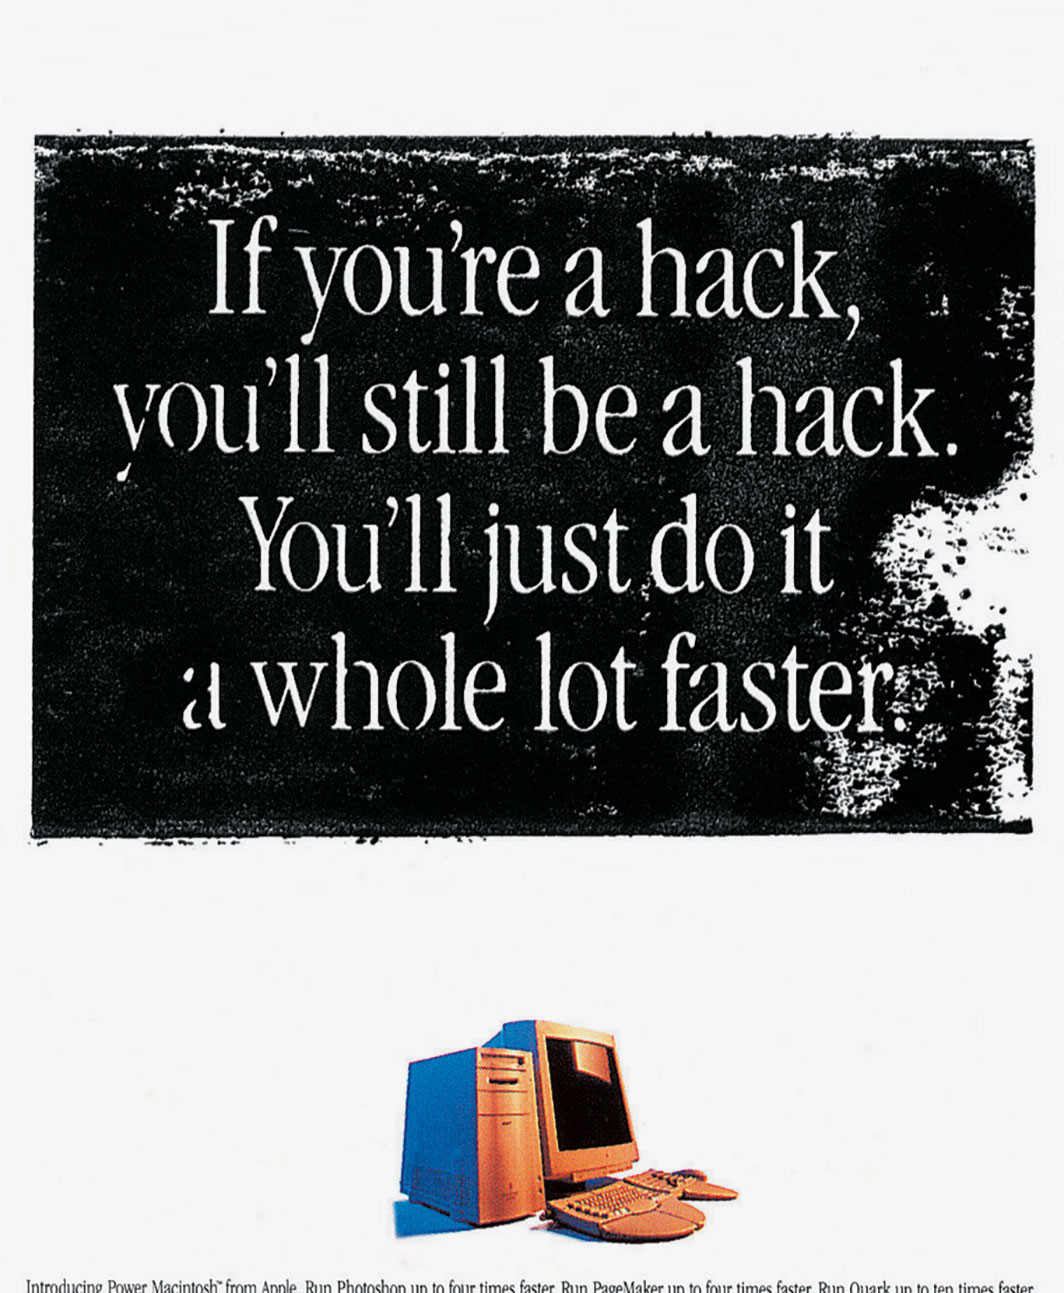 Apple Power Macintosh advertisement, 1994.